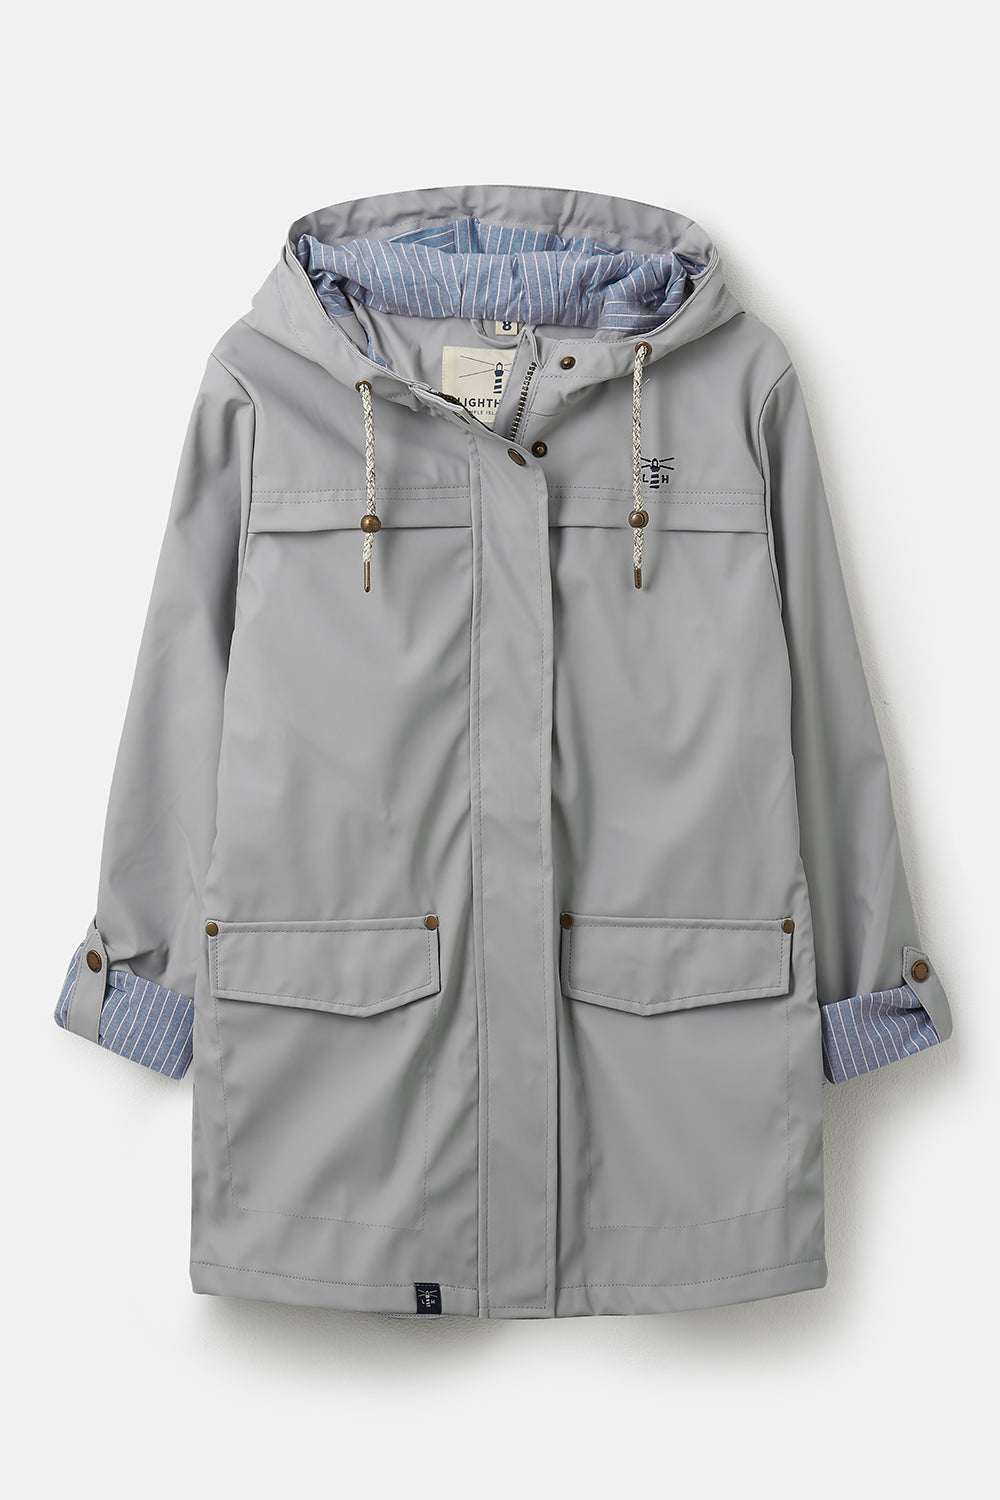 Short Bowline Jacket - Harbour Mist